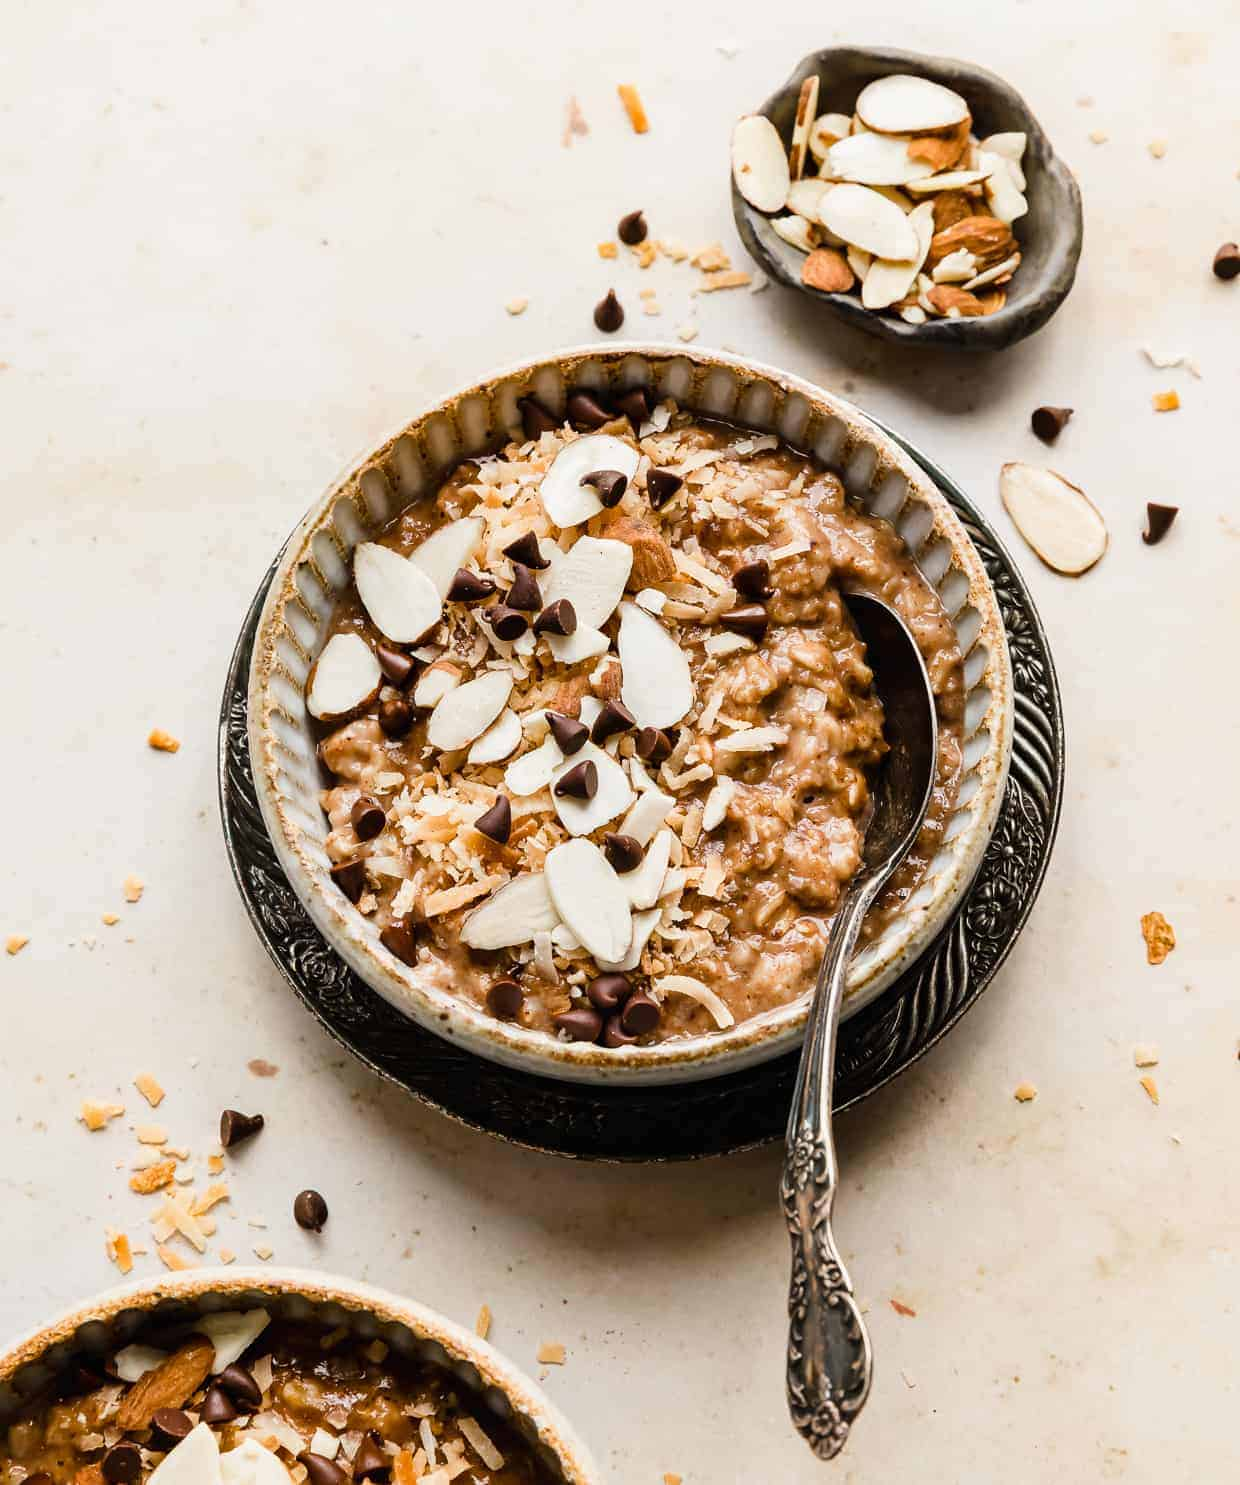 A bowl of almond joy oatmeal topped with sliced almonds and choc chips.